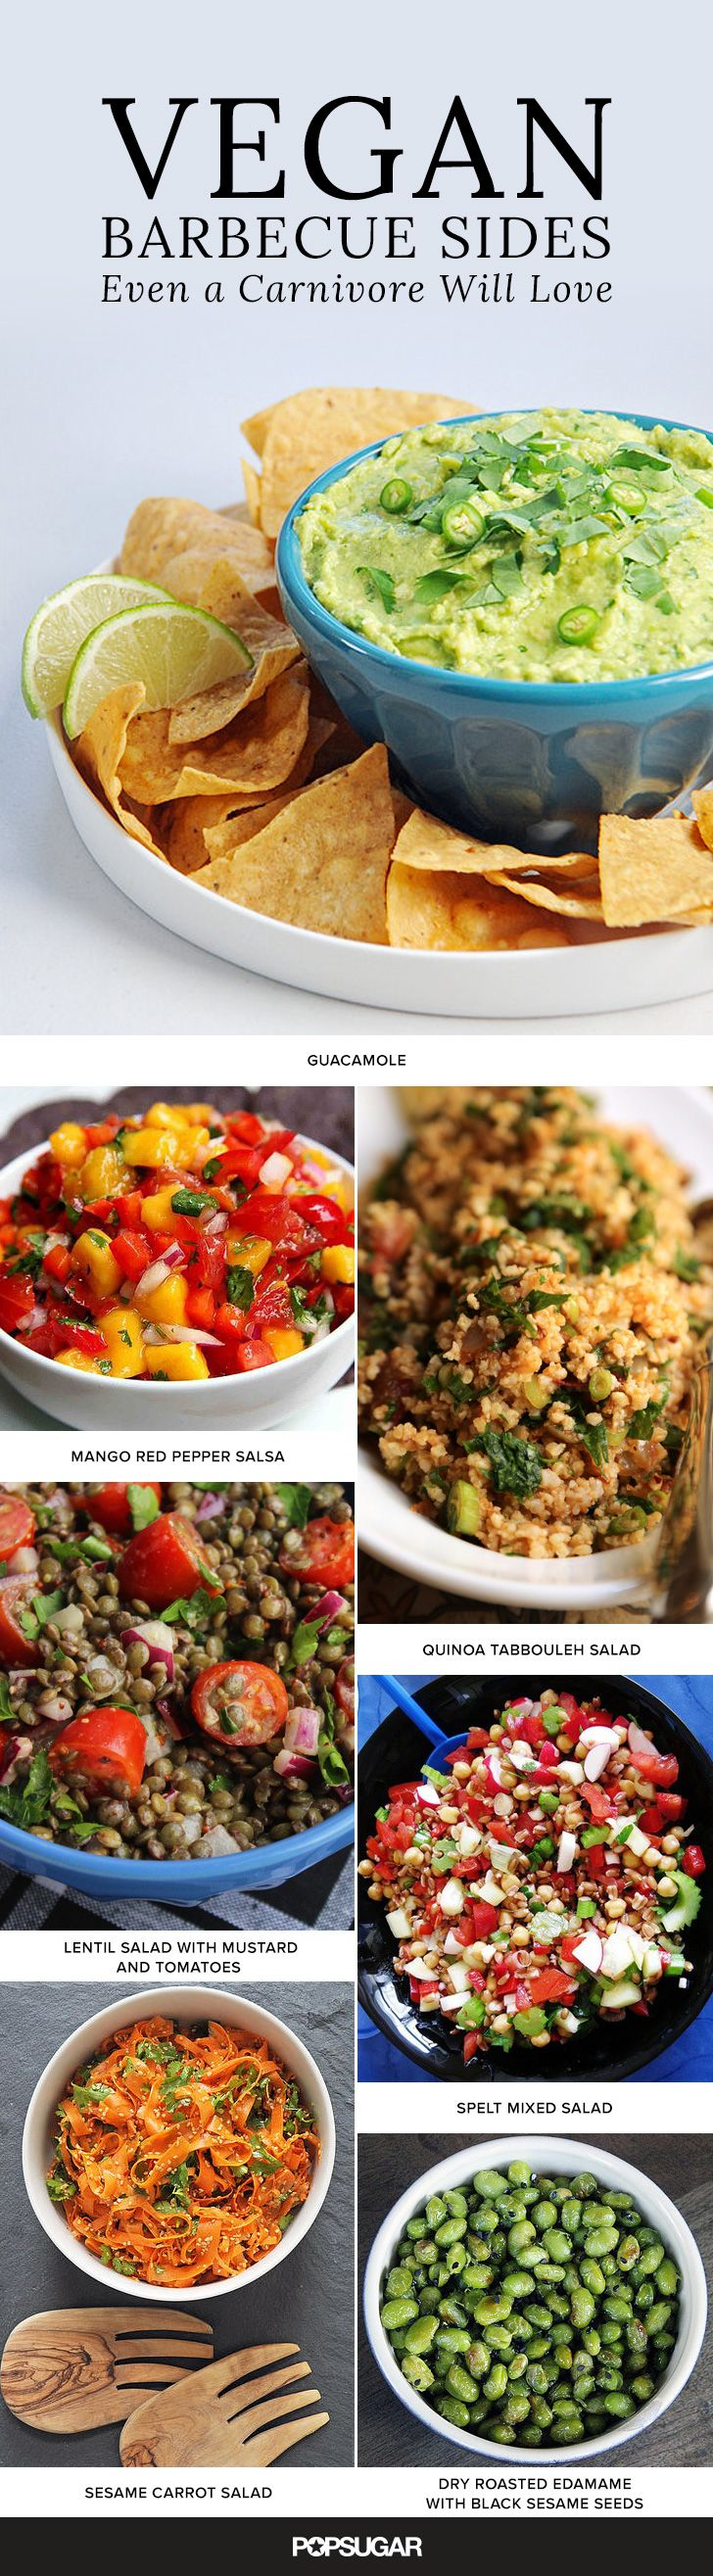 29 Vegan Barbecue Sides That'll Even Impress Nonvegan Eaters